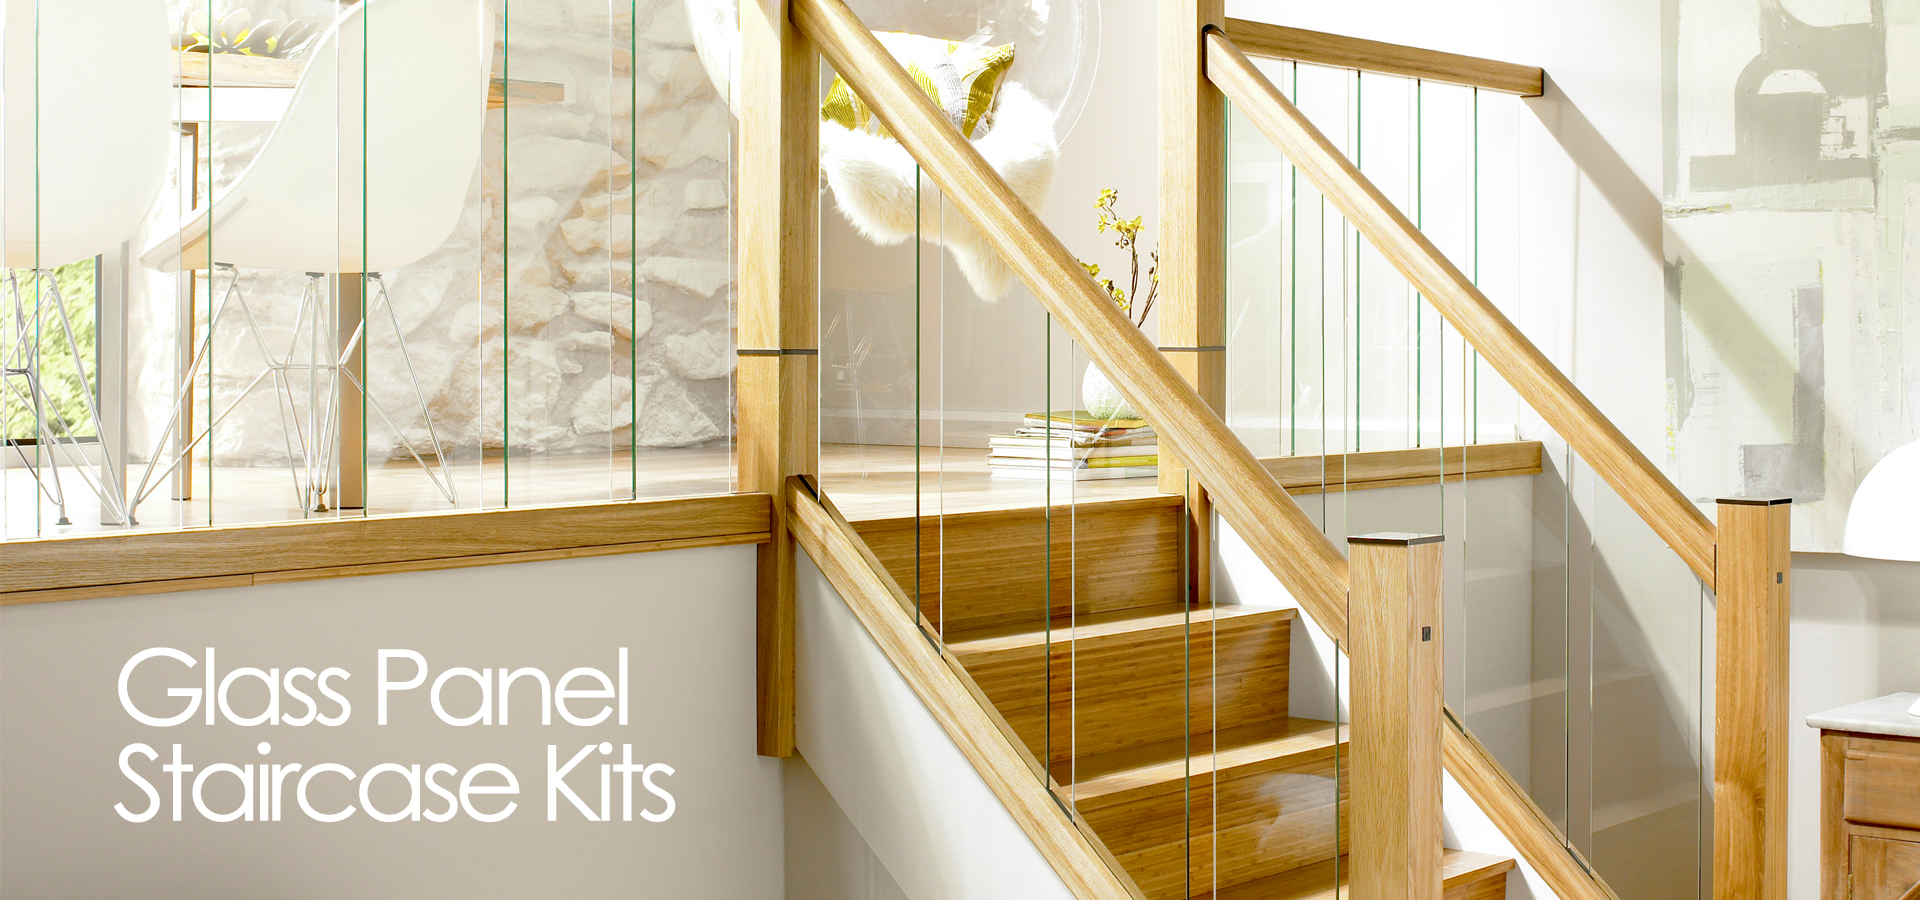 Solid oak stair parts, Handrails & stair kits